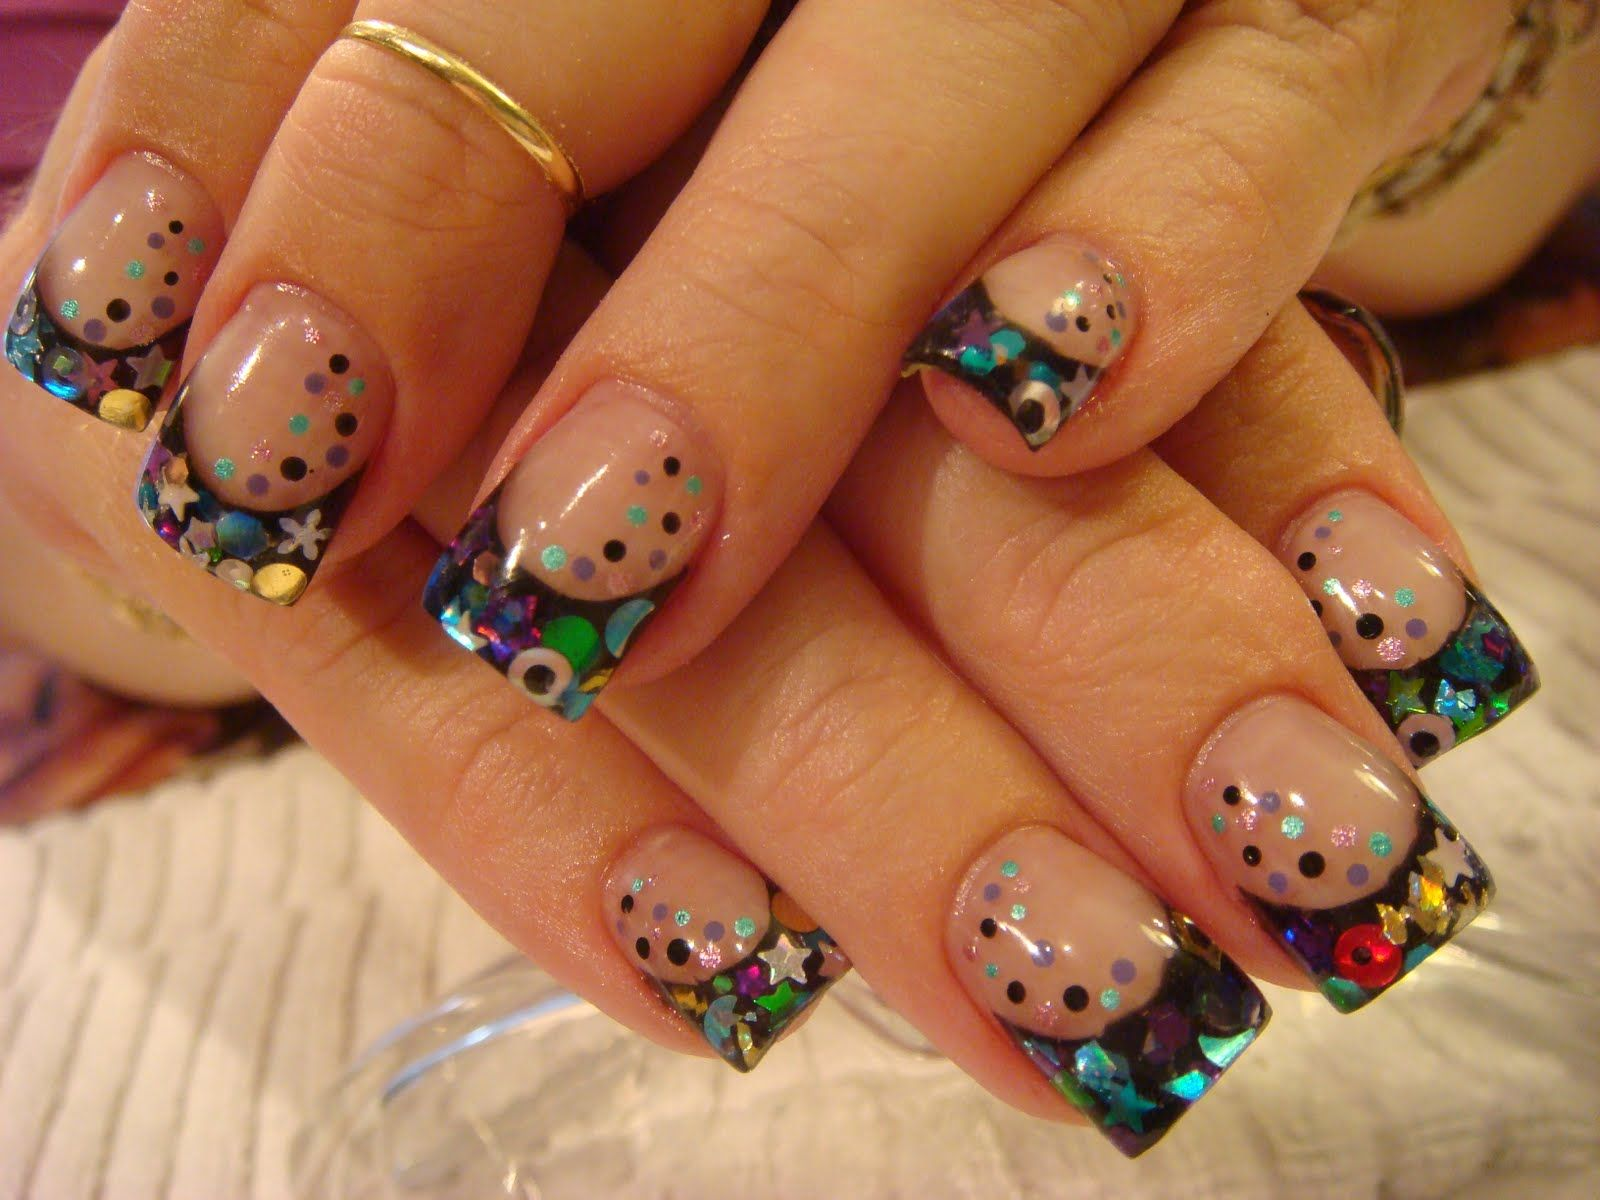 acrylic nails | This is an opi gel polish design. I layered Happy ...